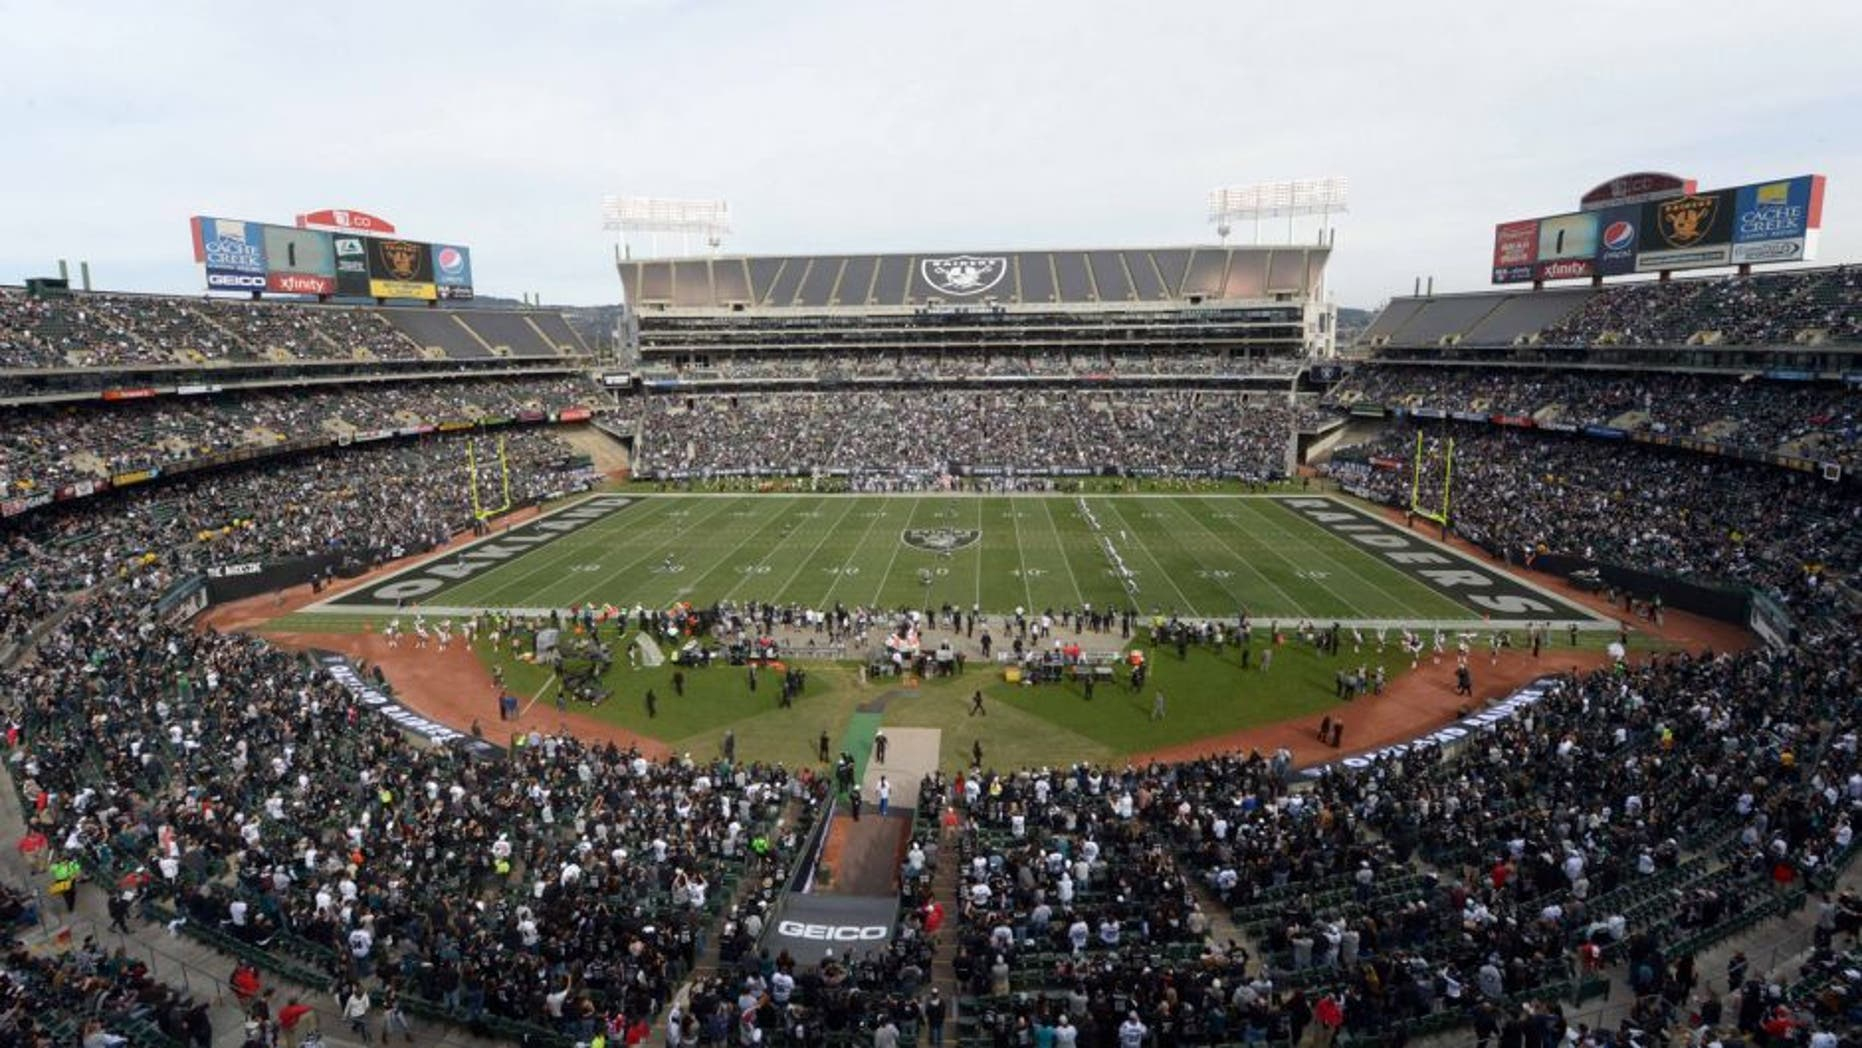 Nov 3, 2013; Oakland, CA, USA; General view of the opening kickoff between the Philadelphia Eagles and the Oakland Raiders at O.co Coliseum. The Eagles defeated the Raiders 49-20. Mandatory Credit: Kirby Lee-USA TODAY Sports